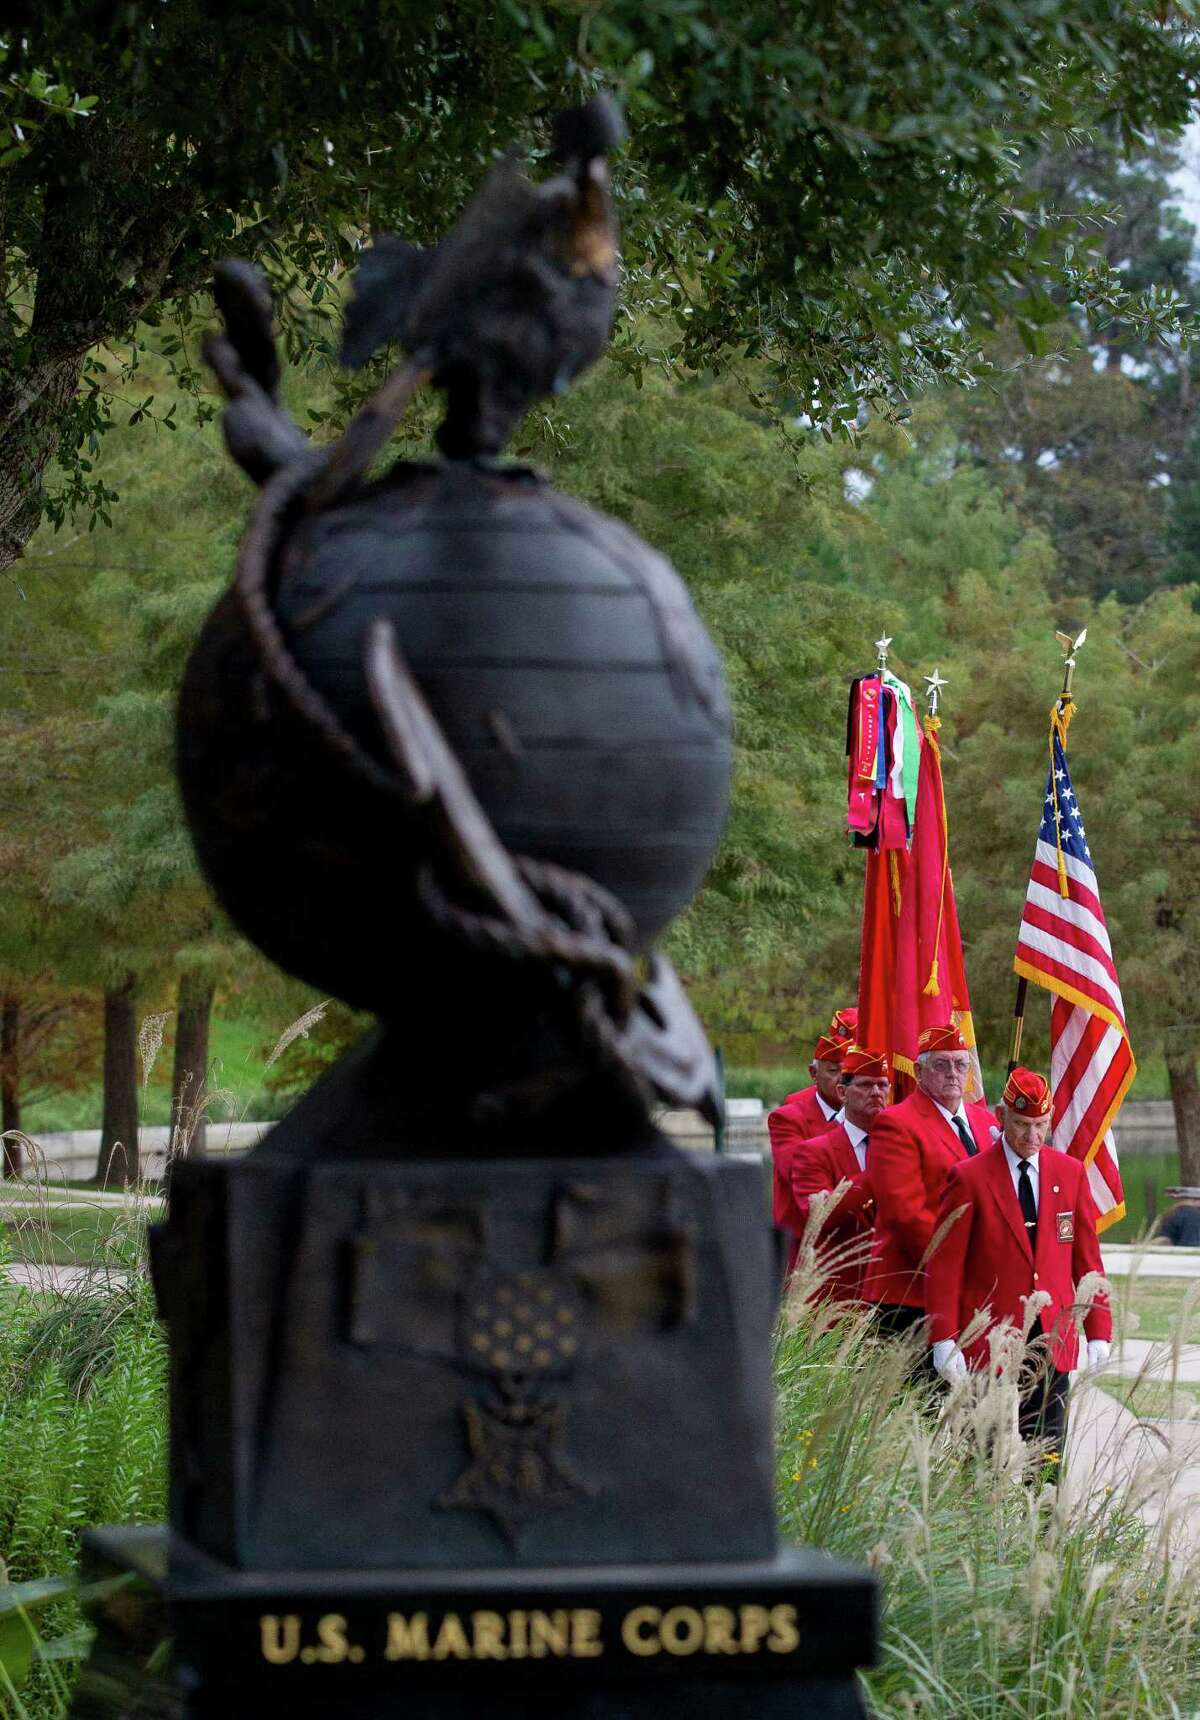 Marine Corps League members march in to present the colors during a celebration in honor of the U.S. Marine Corps' 241st birthday at Town Green Park Thursday, Nov. 10, 2016, in The Woodlands.